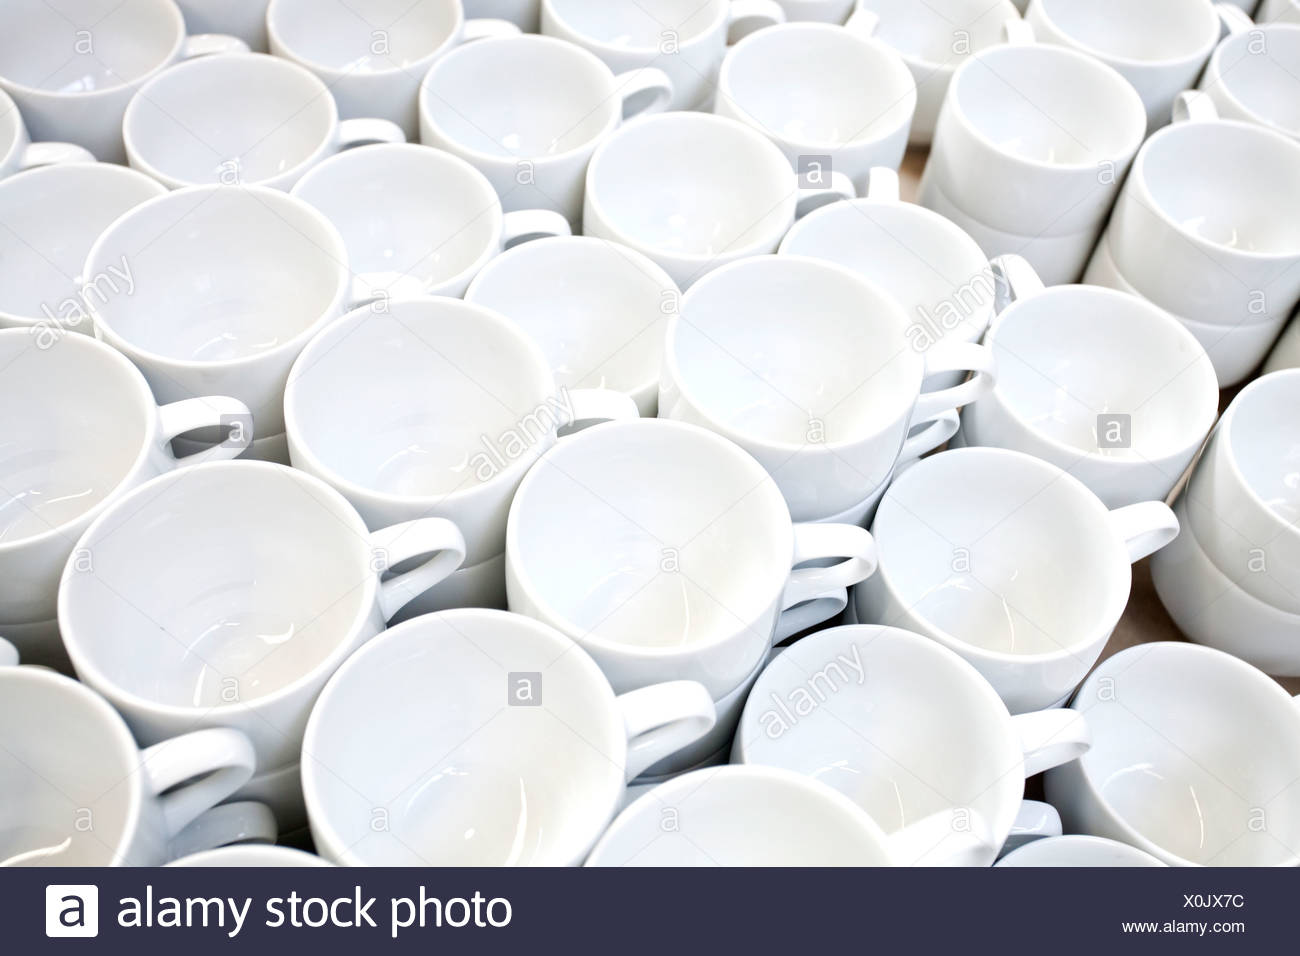 Coffee mugs from Rosenthal in the production of tableware at the porcelain manufacturer Rosenthal GmbH Speichersdorf Bavaria  sc 1 st  Alamy & Coffee mugs from Rosenthal in the production of tableware at the ...